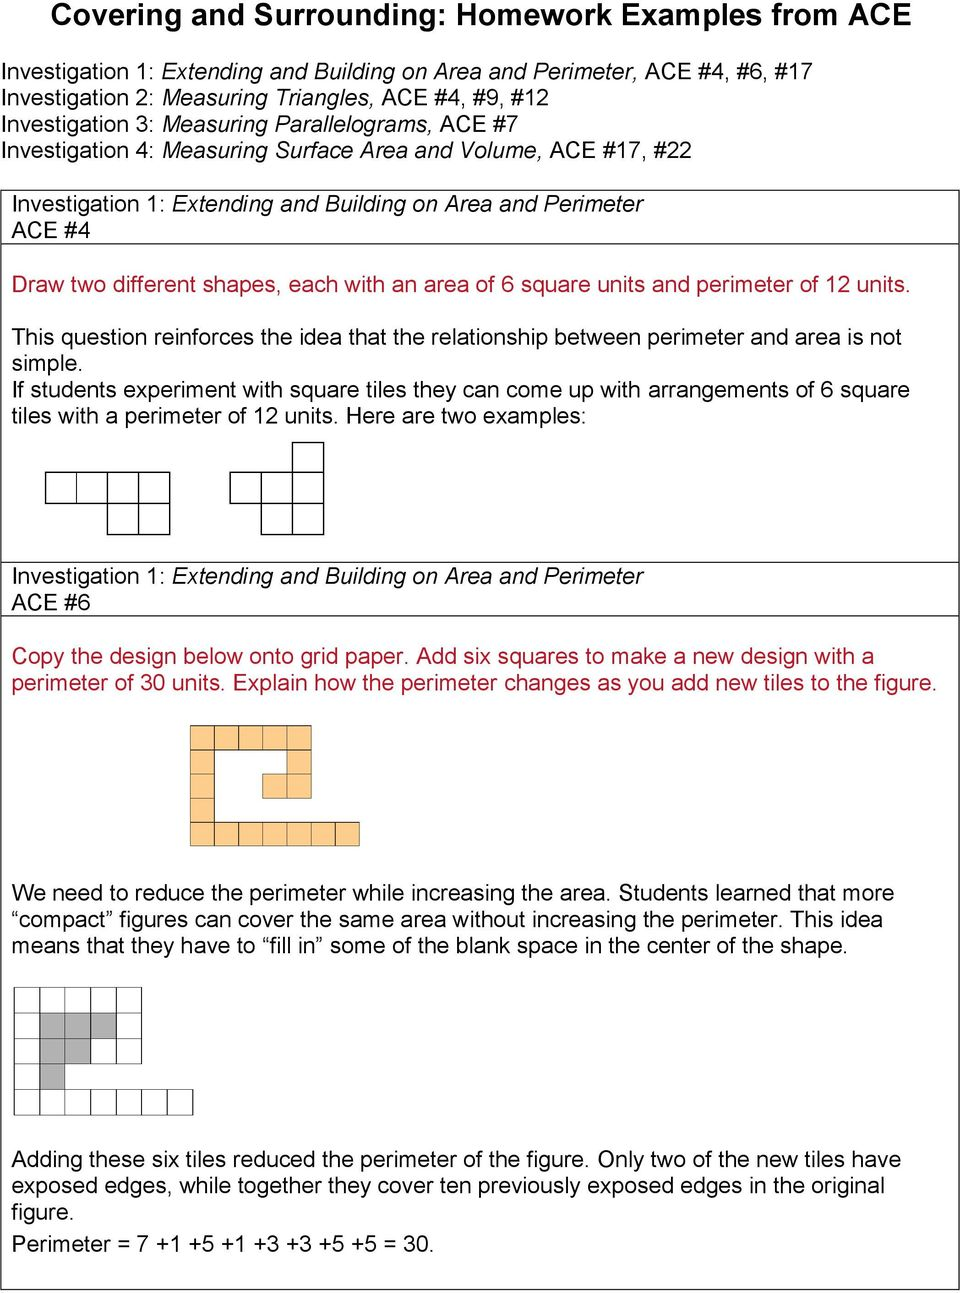 each with an area of 6 square units and perimeter of 12 units. This question reinforces the idea that the relationship between perimeter and area is not simple.